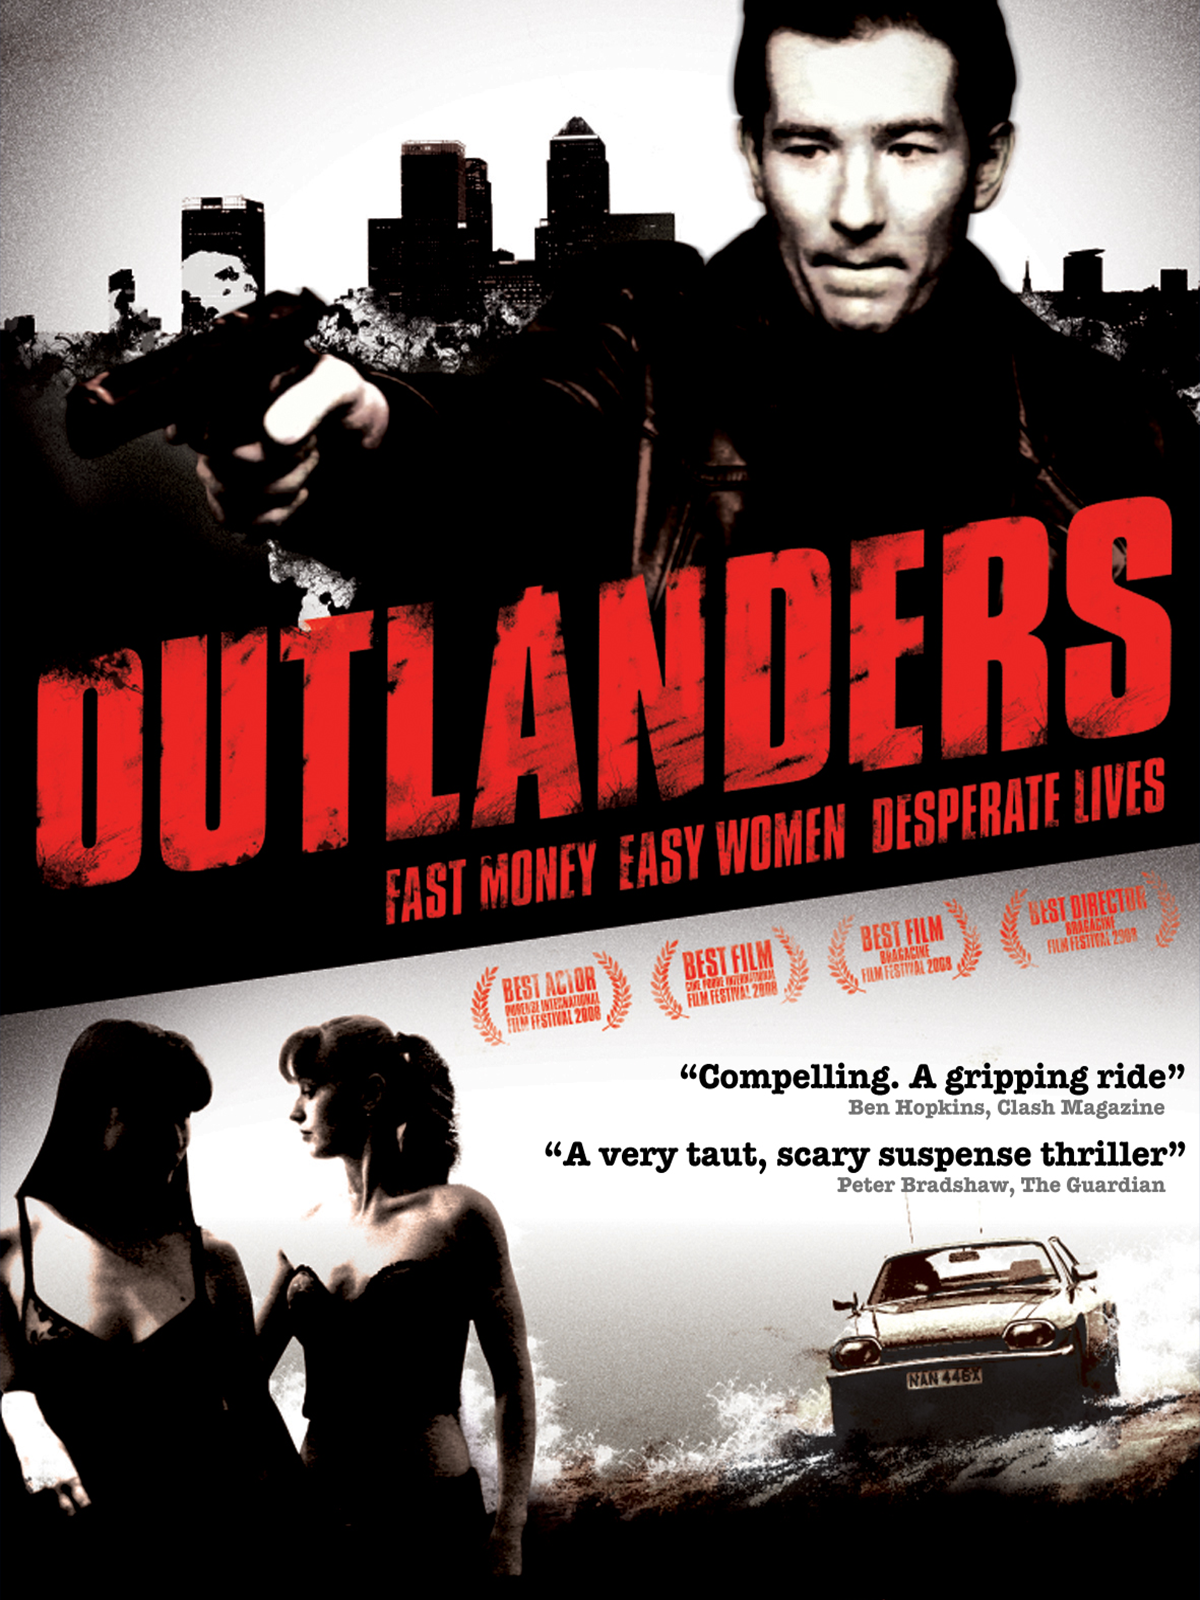 OUTLANDERS 1200X1600 ARTWORK